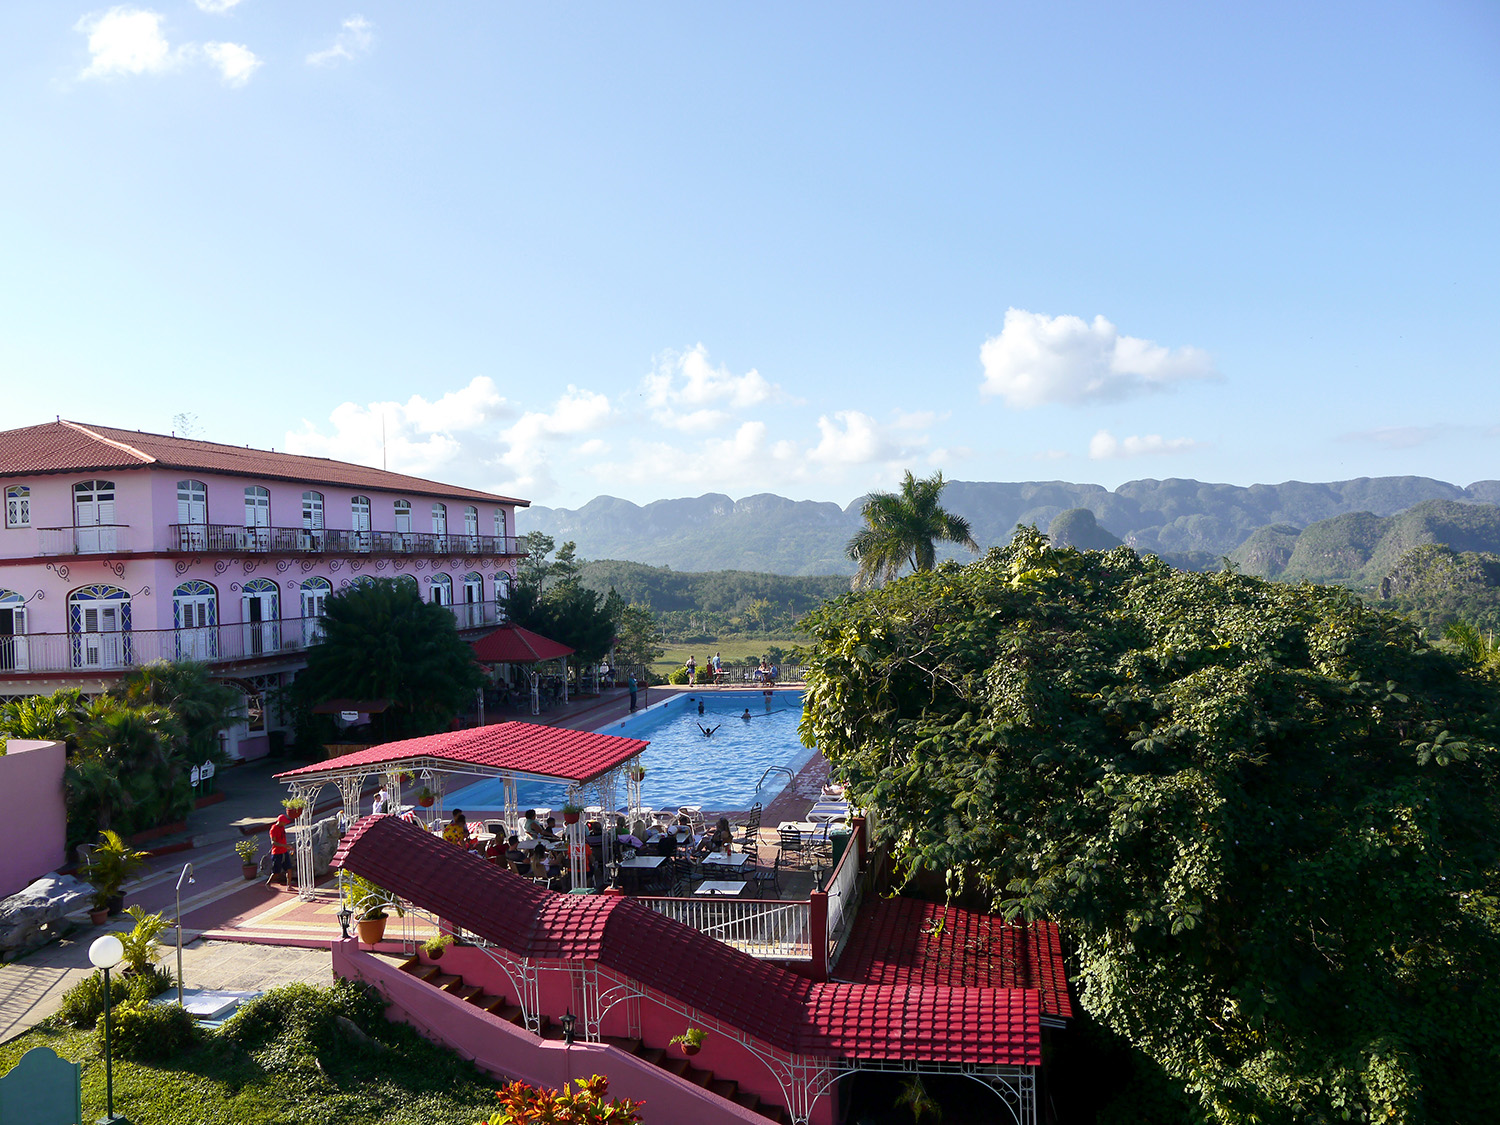 A hotel with large swimming pool beneath the hills of Vinales.